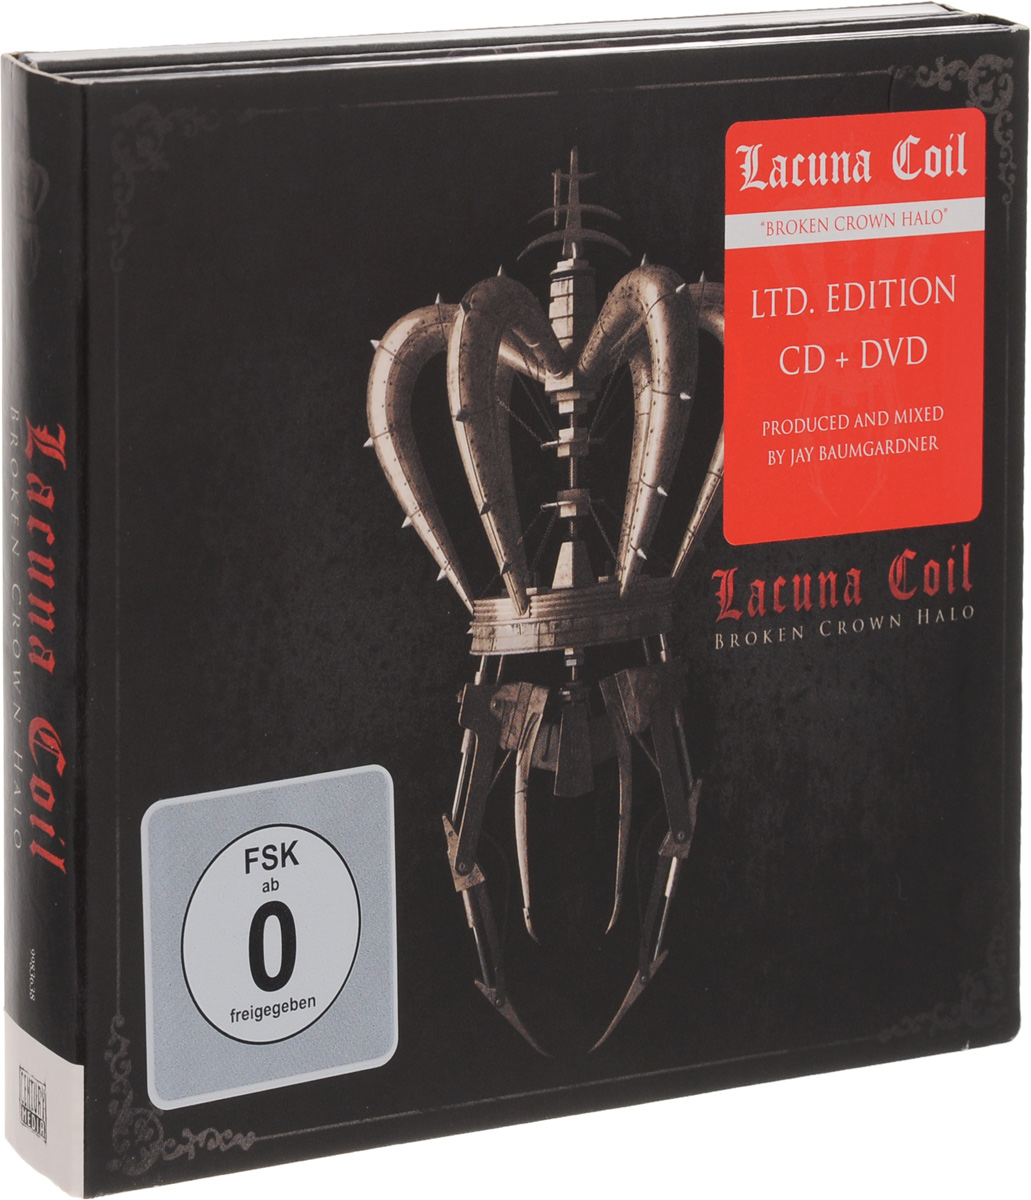 Lacuna Coil Lacuna Coil. Broken Crown Halo (CD + DVD) the silver crown